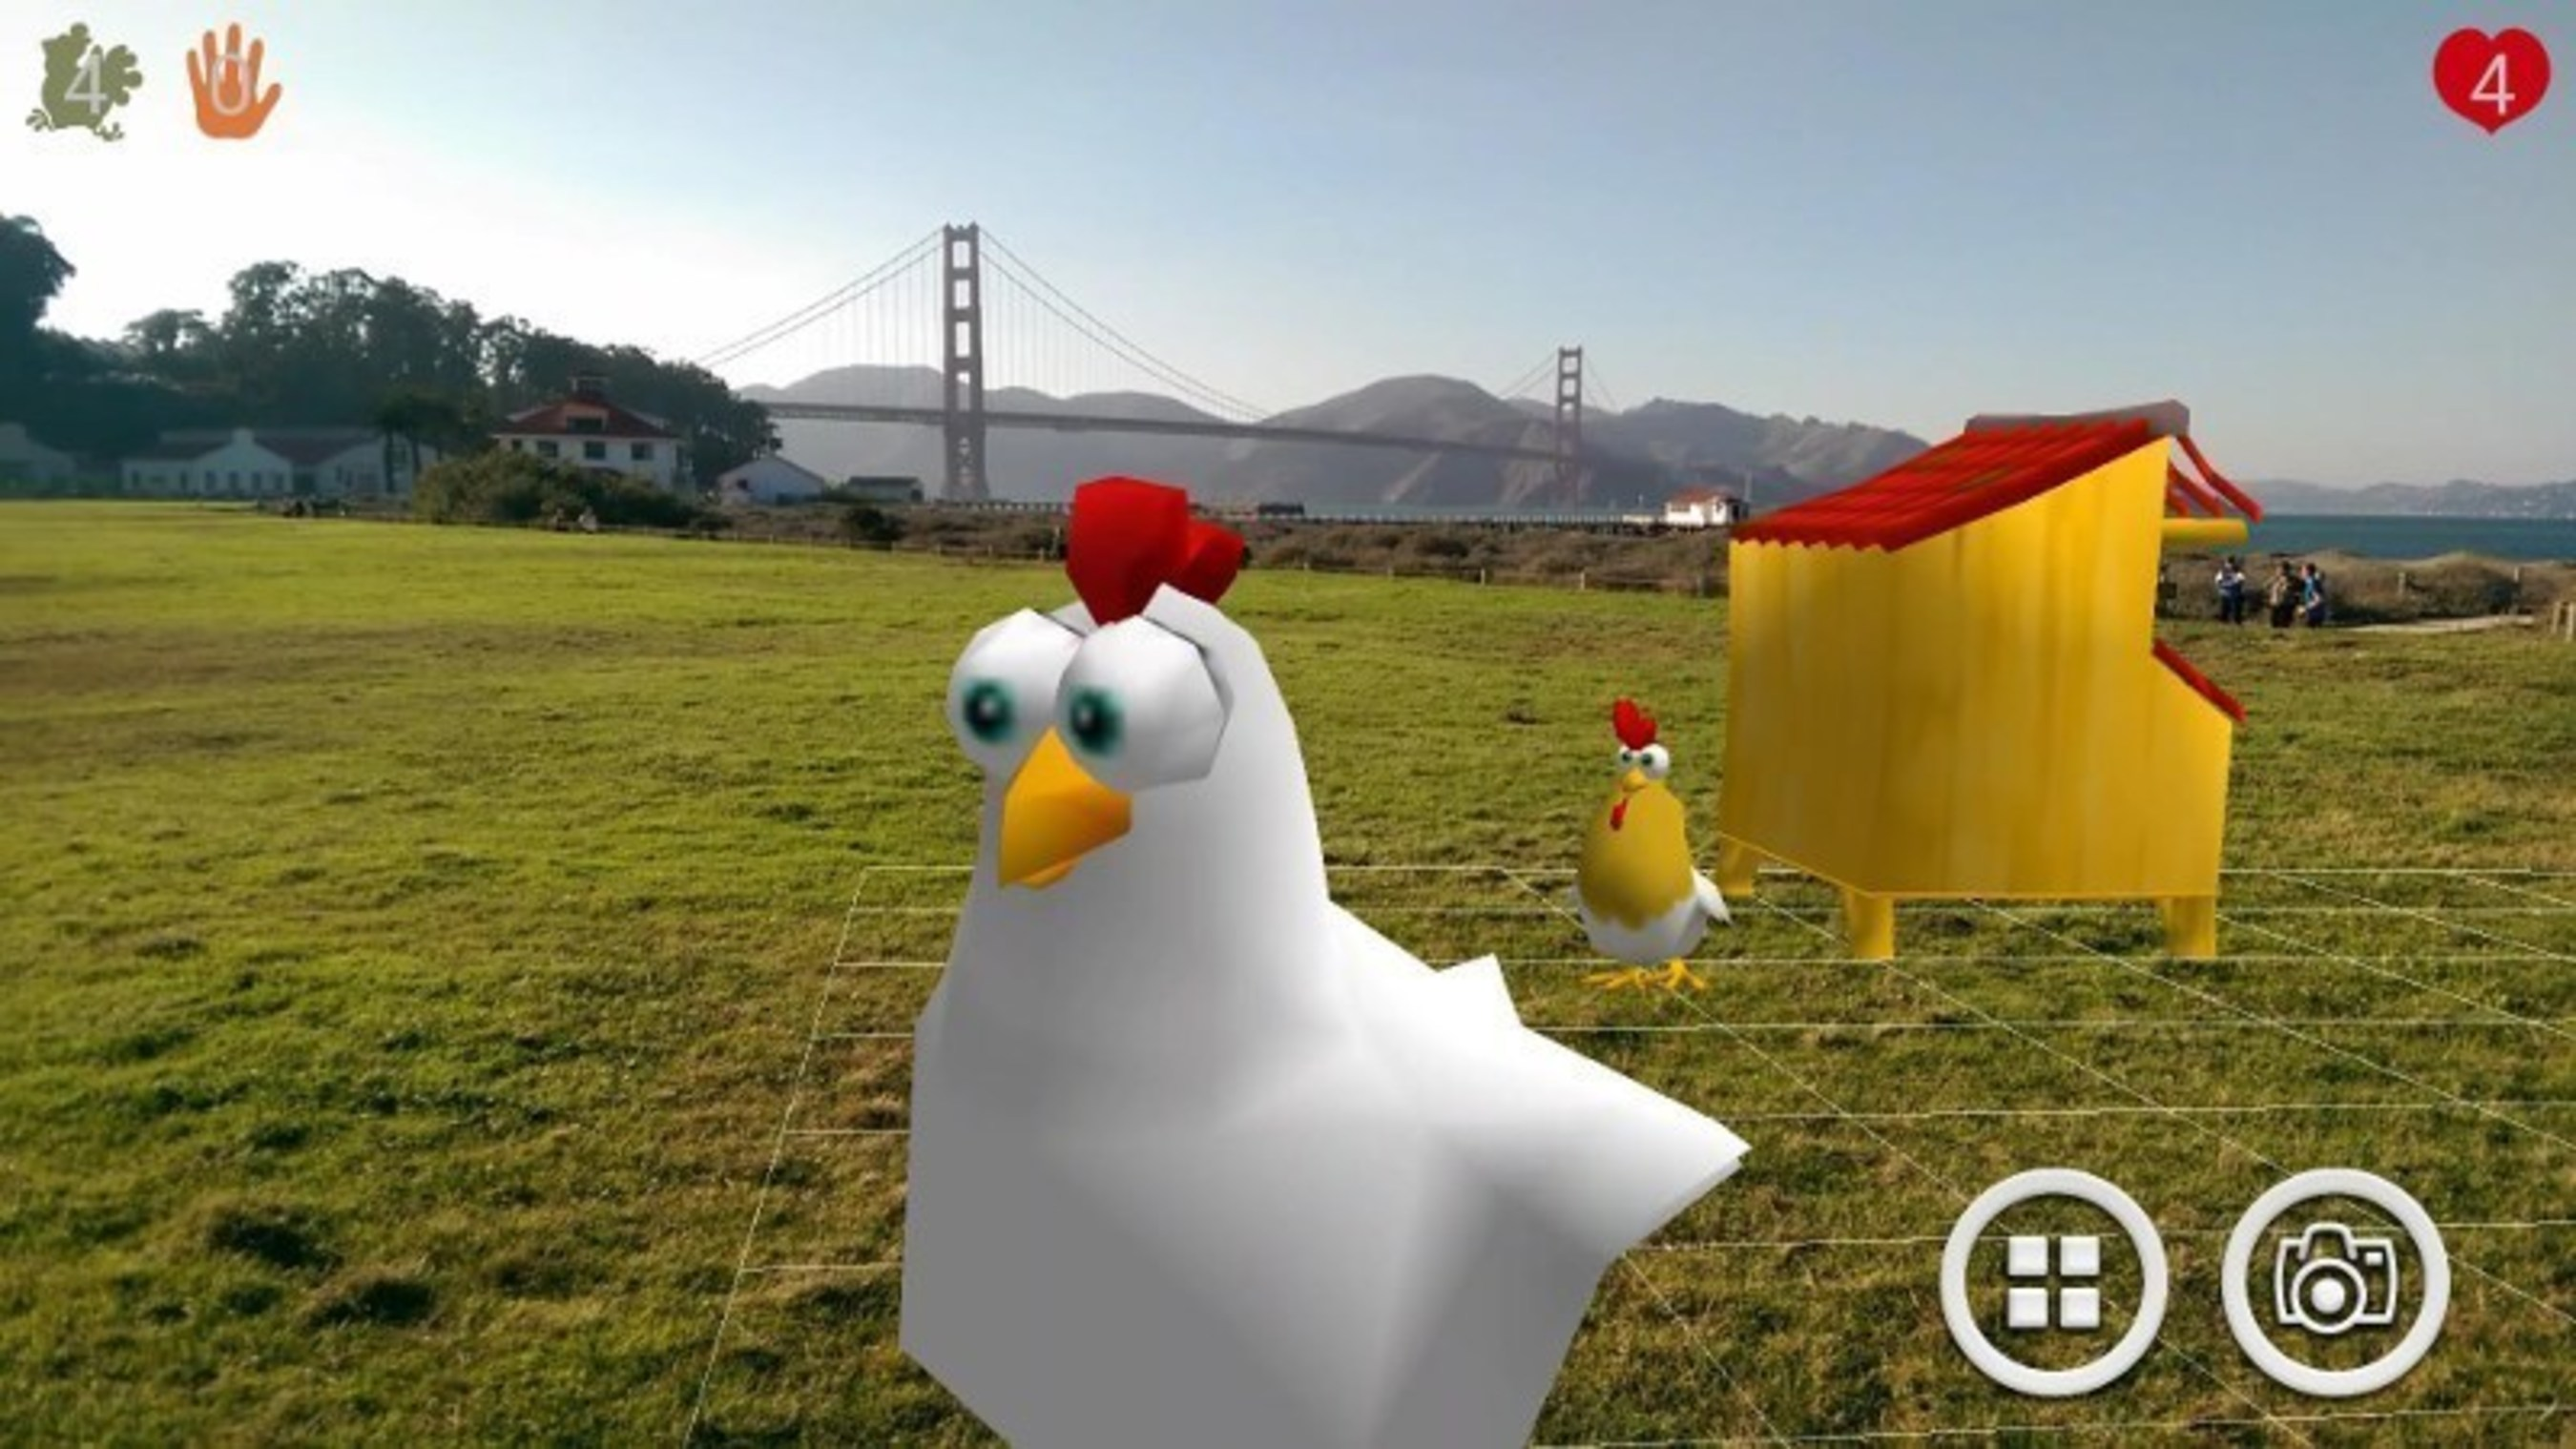 Virtual chickens have flown the coop in the augmented reality app Chicken Charge.